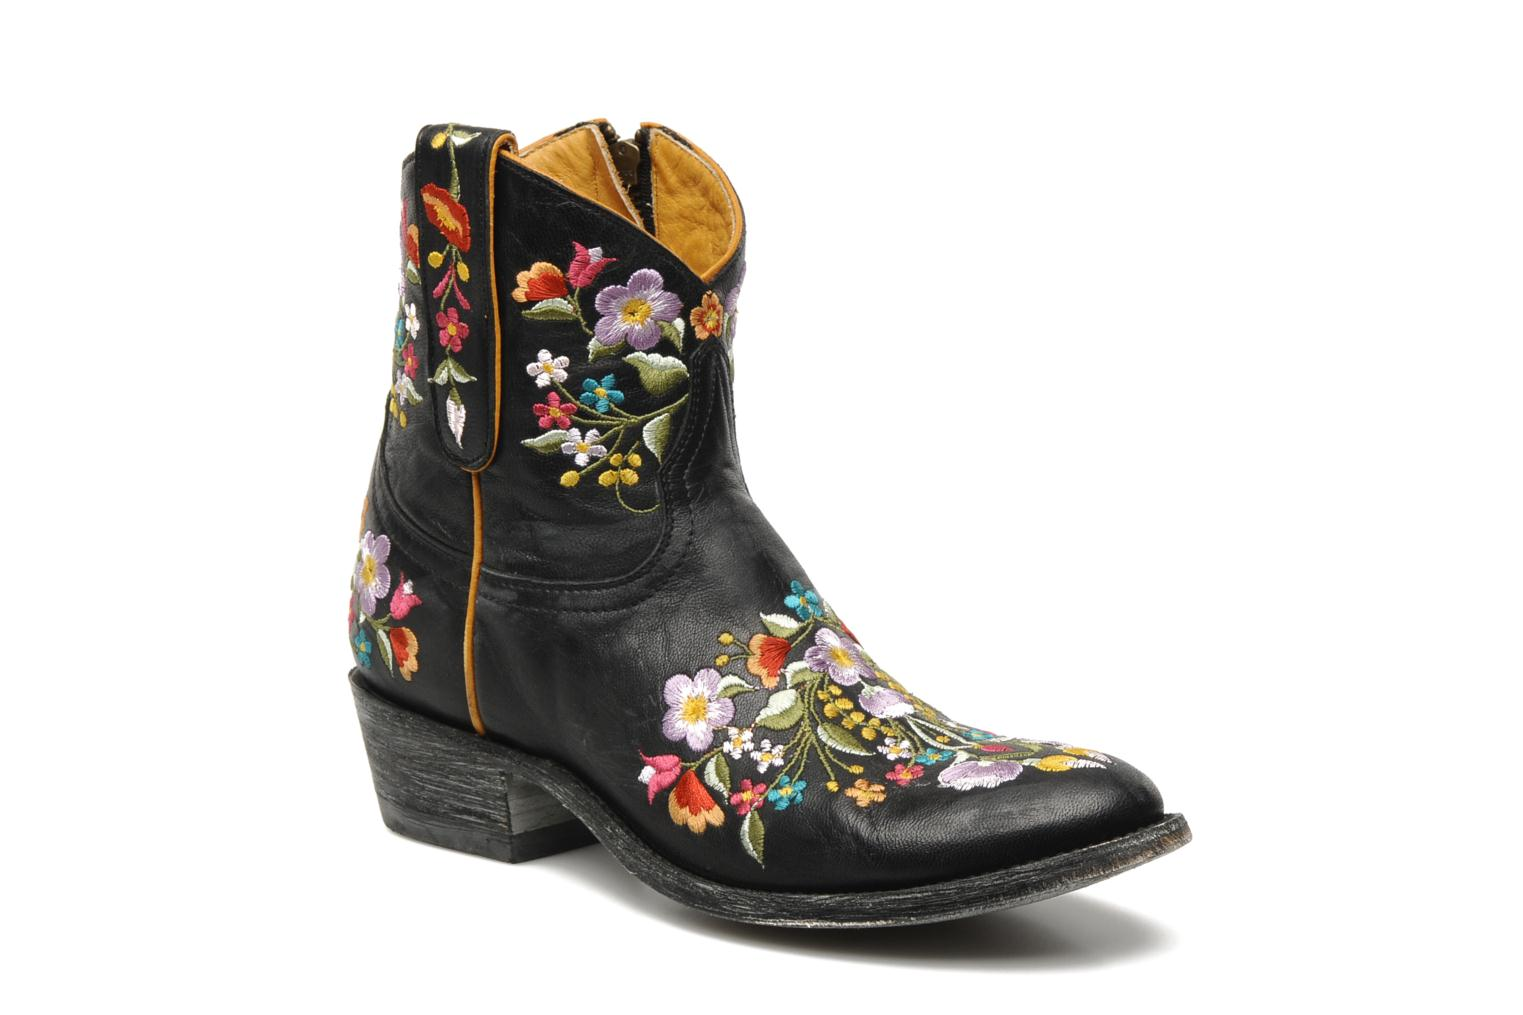 Mexicana Tijuana Ankle Boots In Black At Sarenza Co Uk